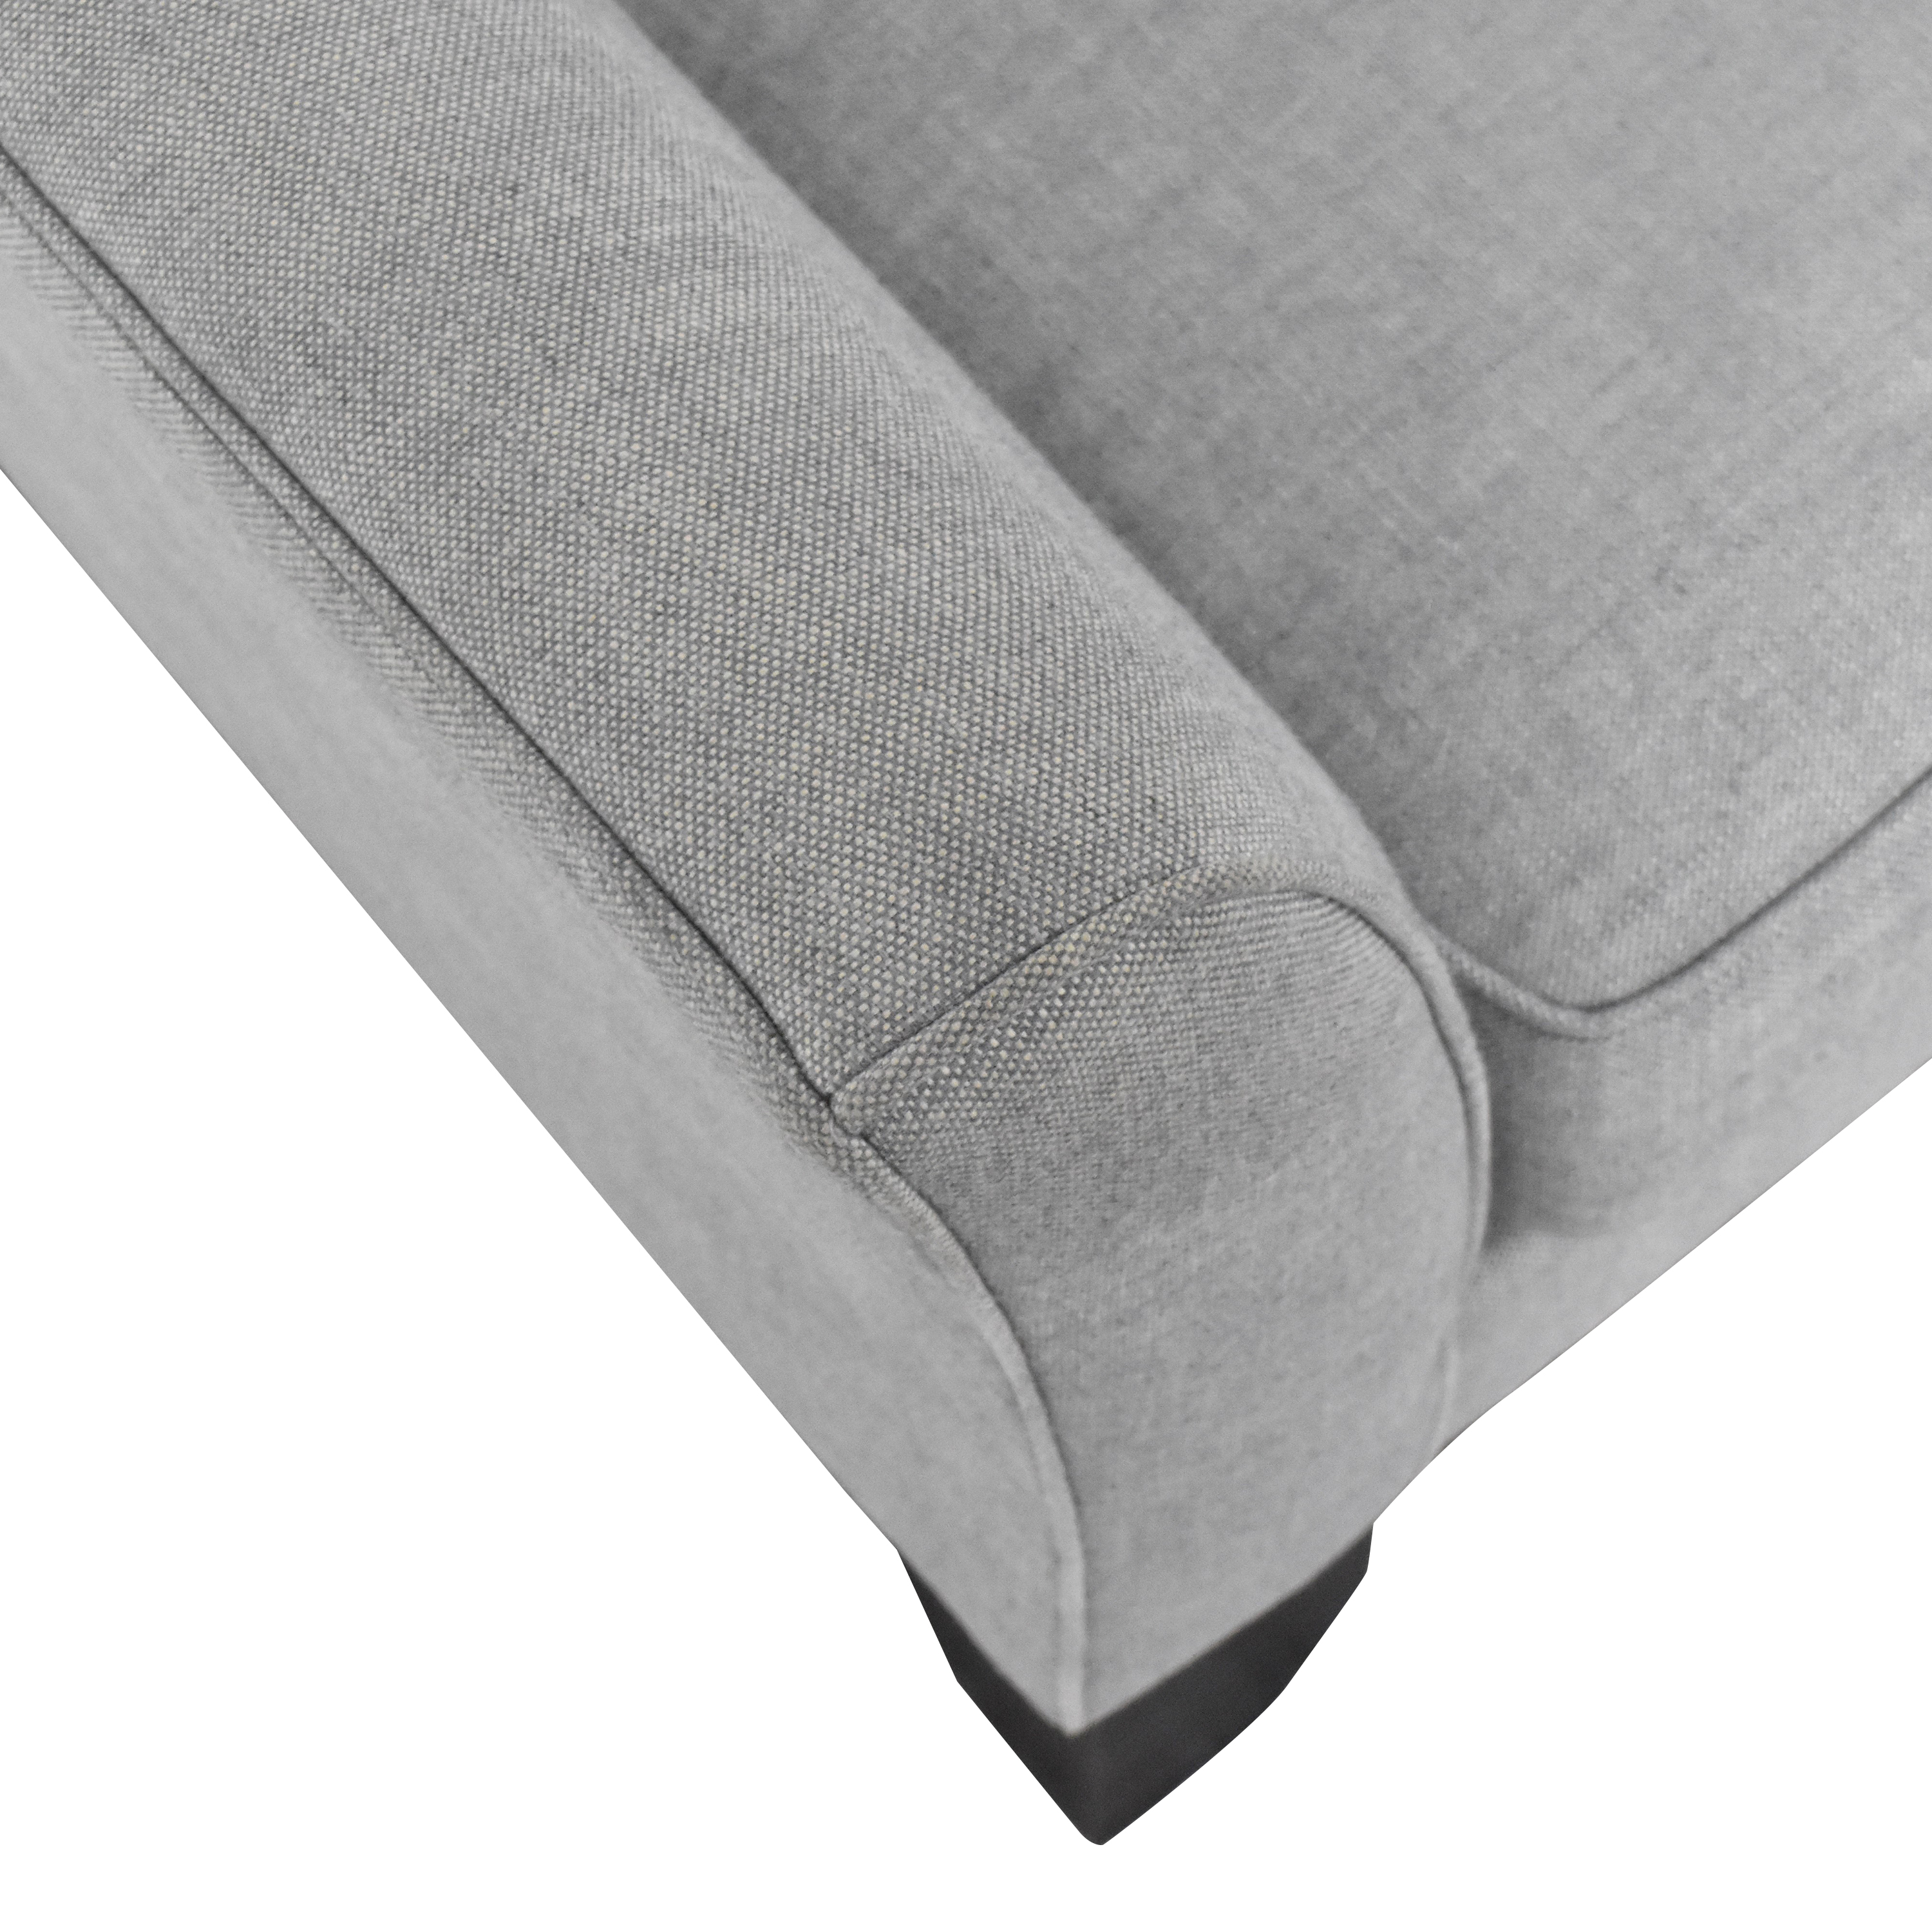 Pottery Barn Pottery Barn Greenwich Upholstered Two Cushion Sofa on sale